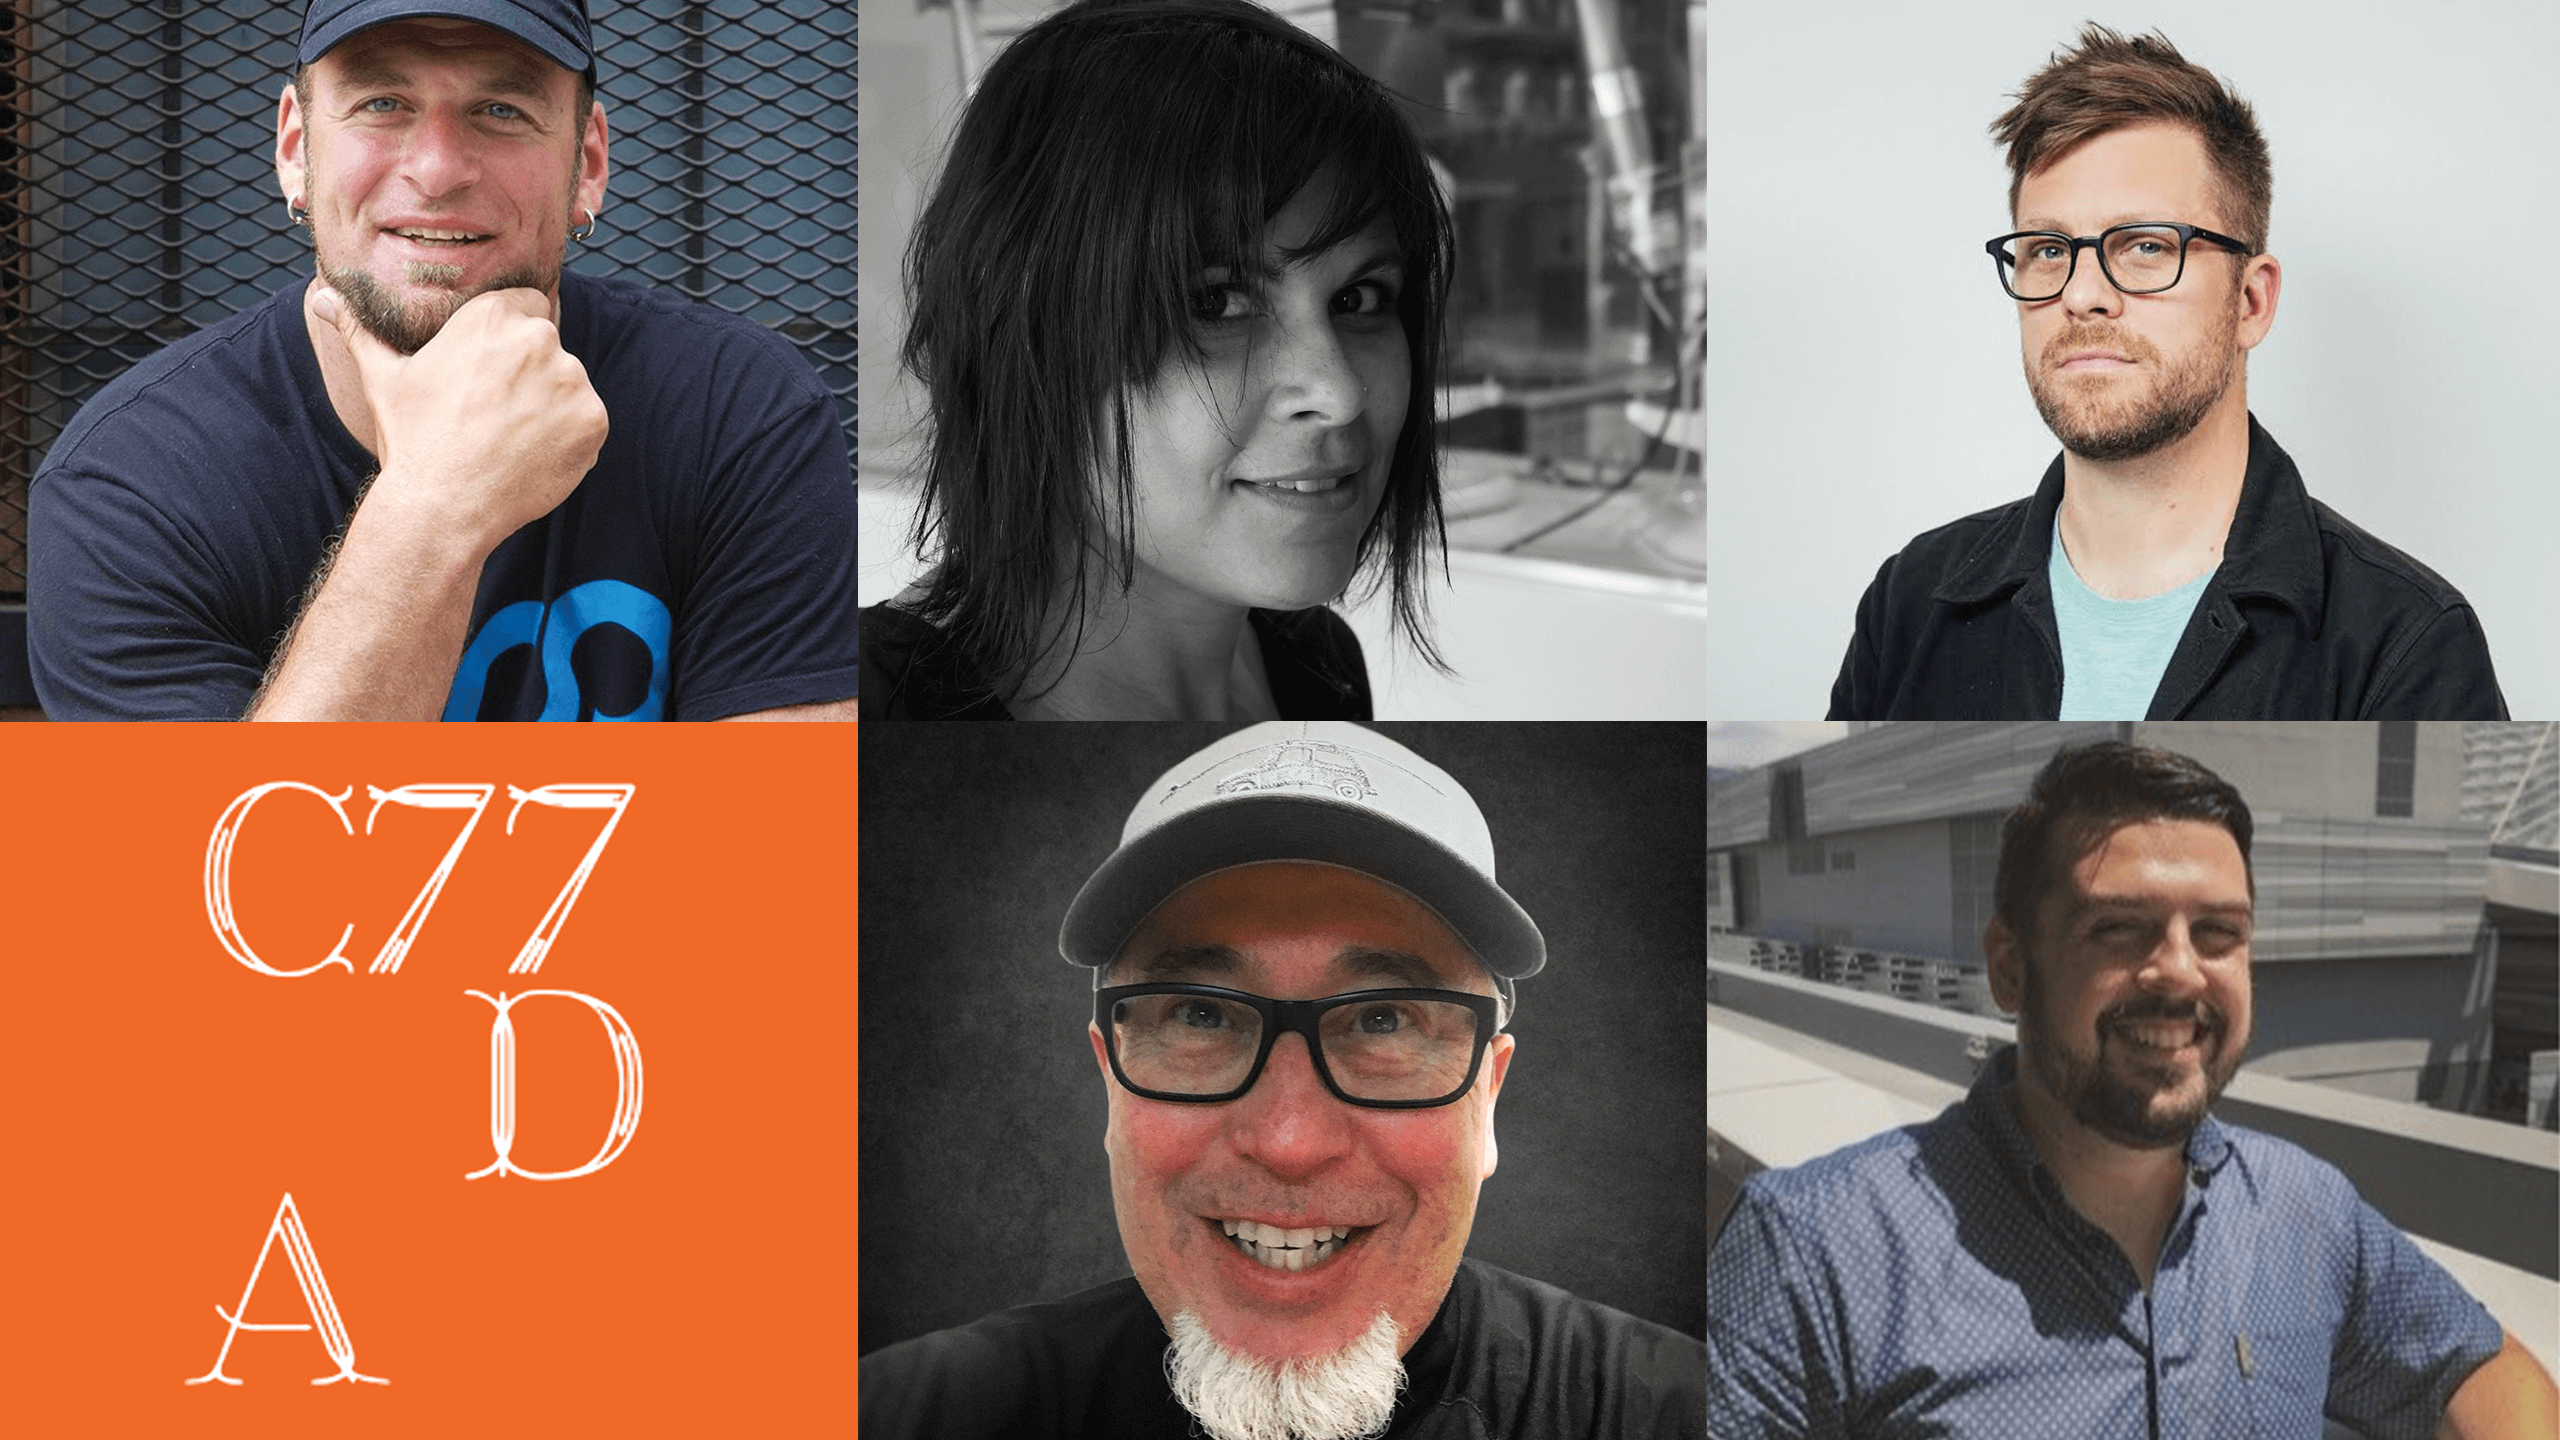 We're in: Core77 Design Awards Jury